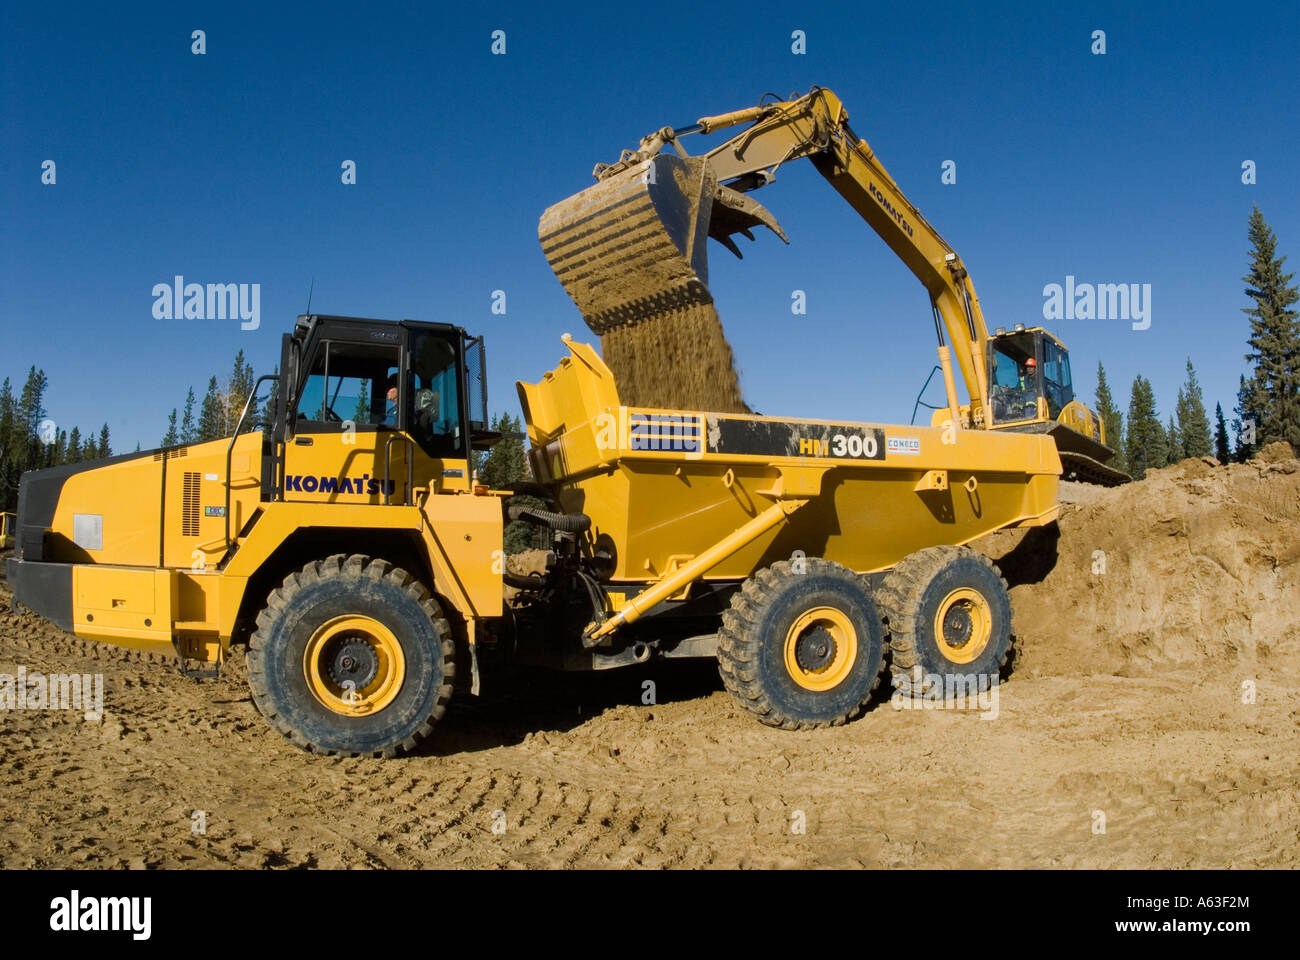 Loading Truck side view. - Stock Image